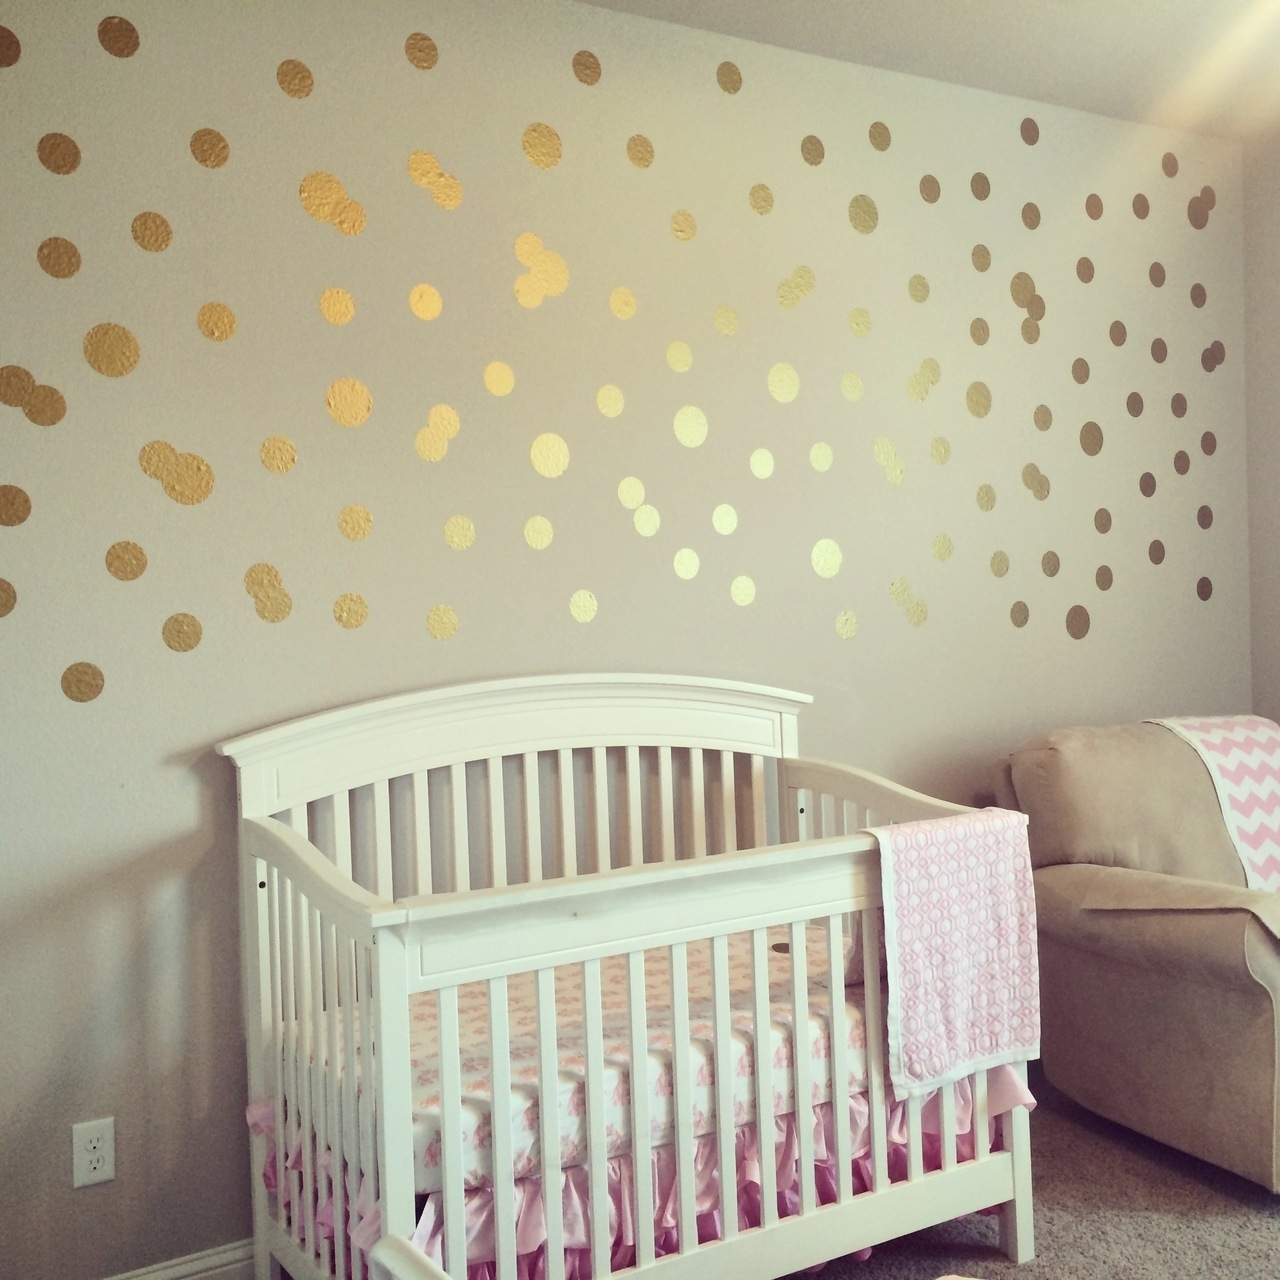 Favorite Metallic Gold Polka Dot Wall Decals (View 11 of 15)